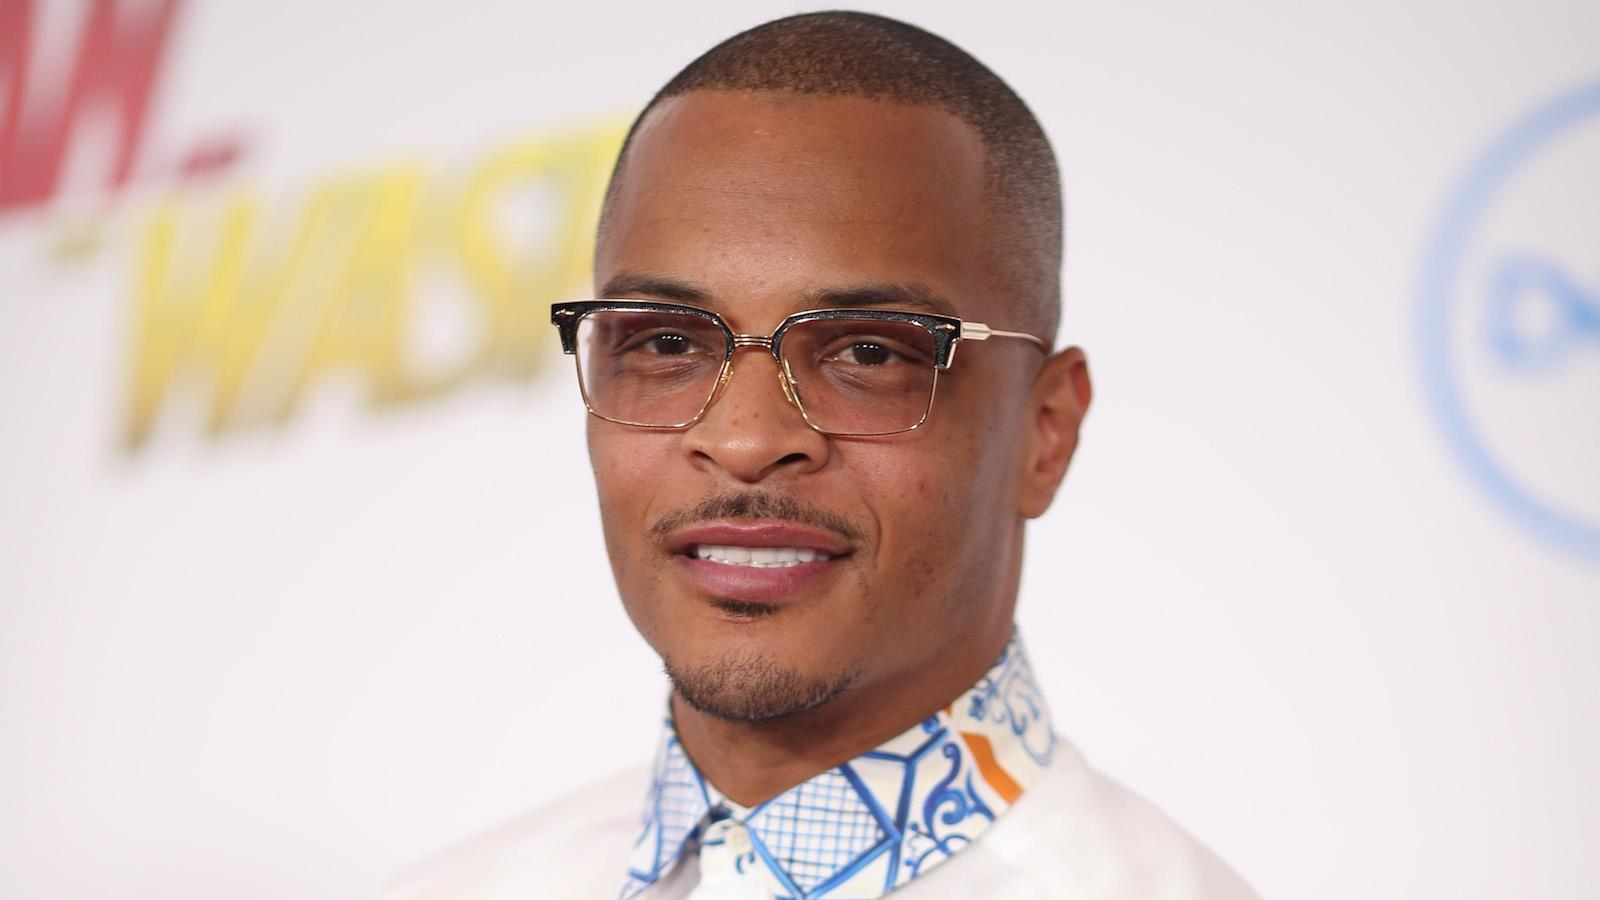 T.I. Is Back On Social Media Following A Break After The Scandal Involving His Daughter